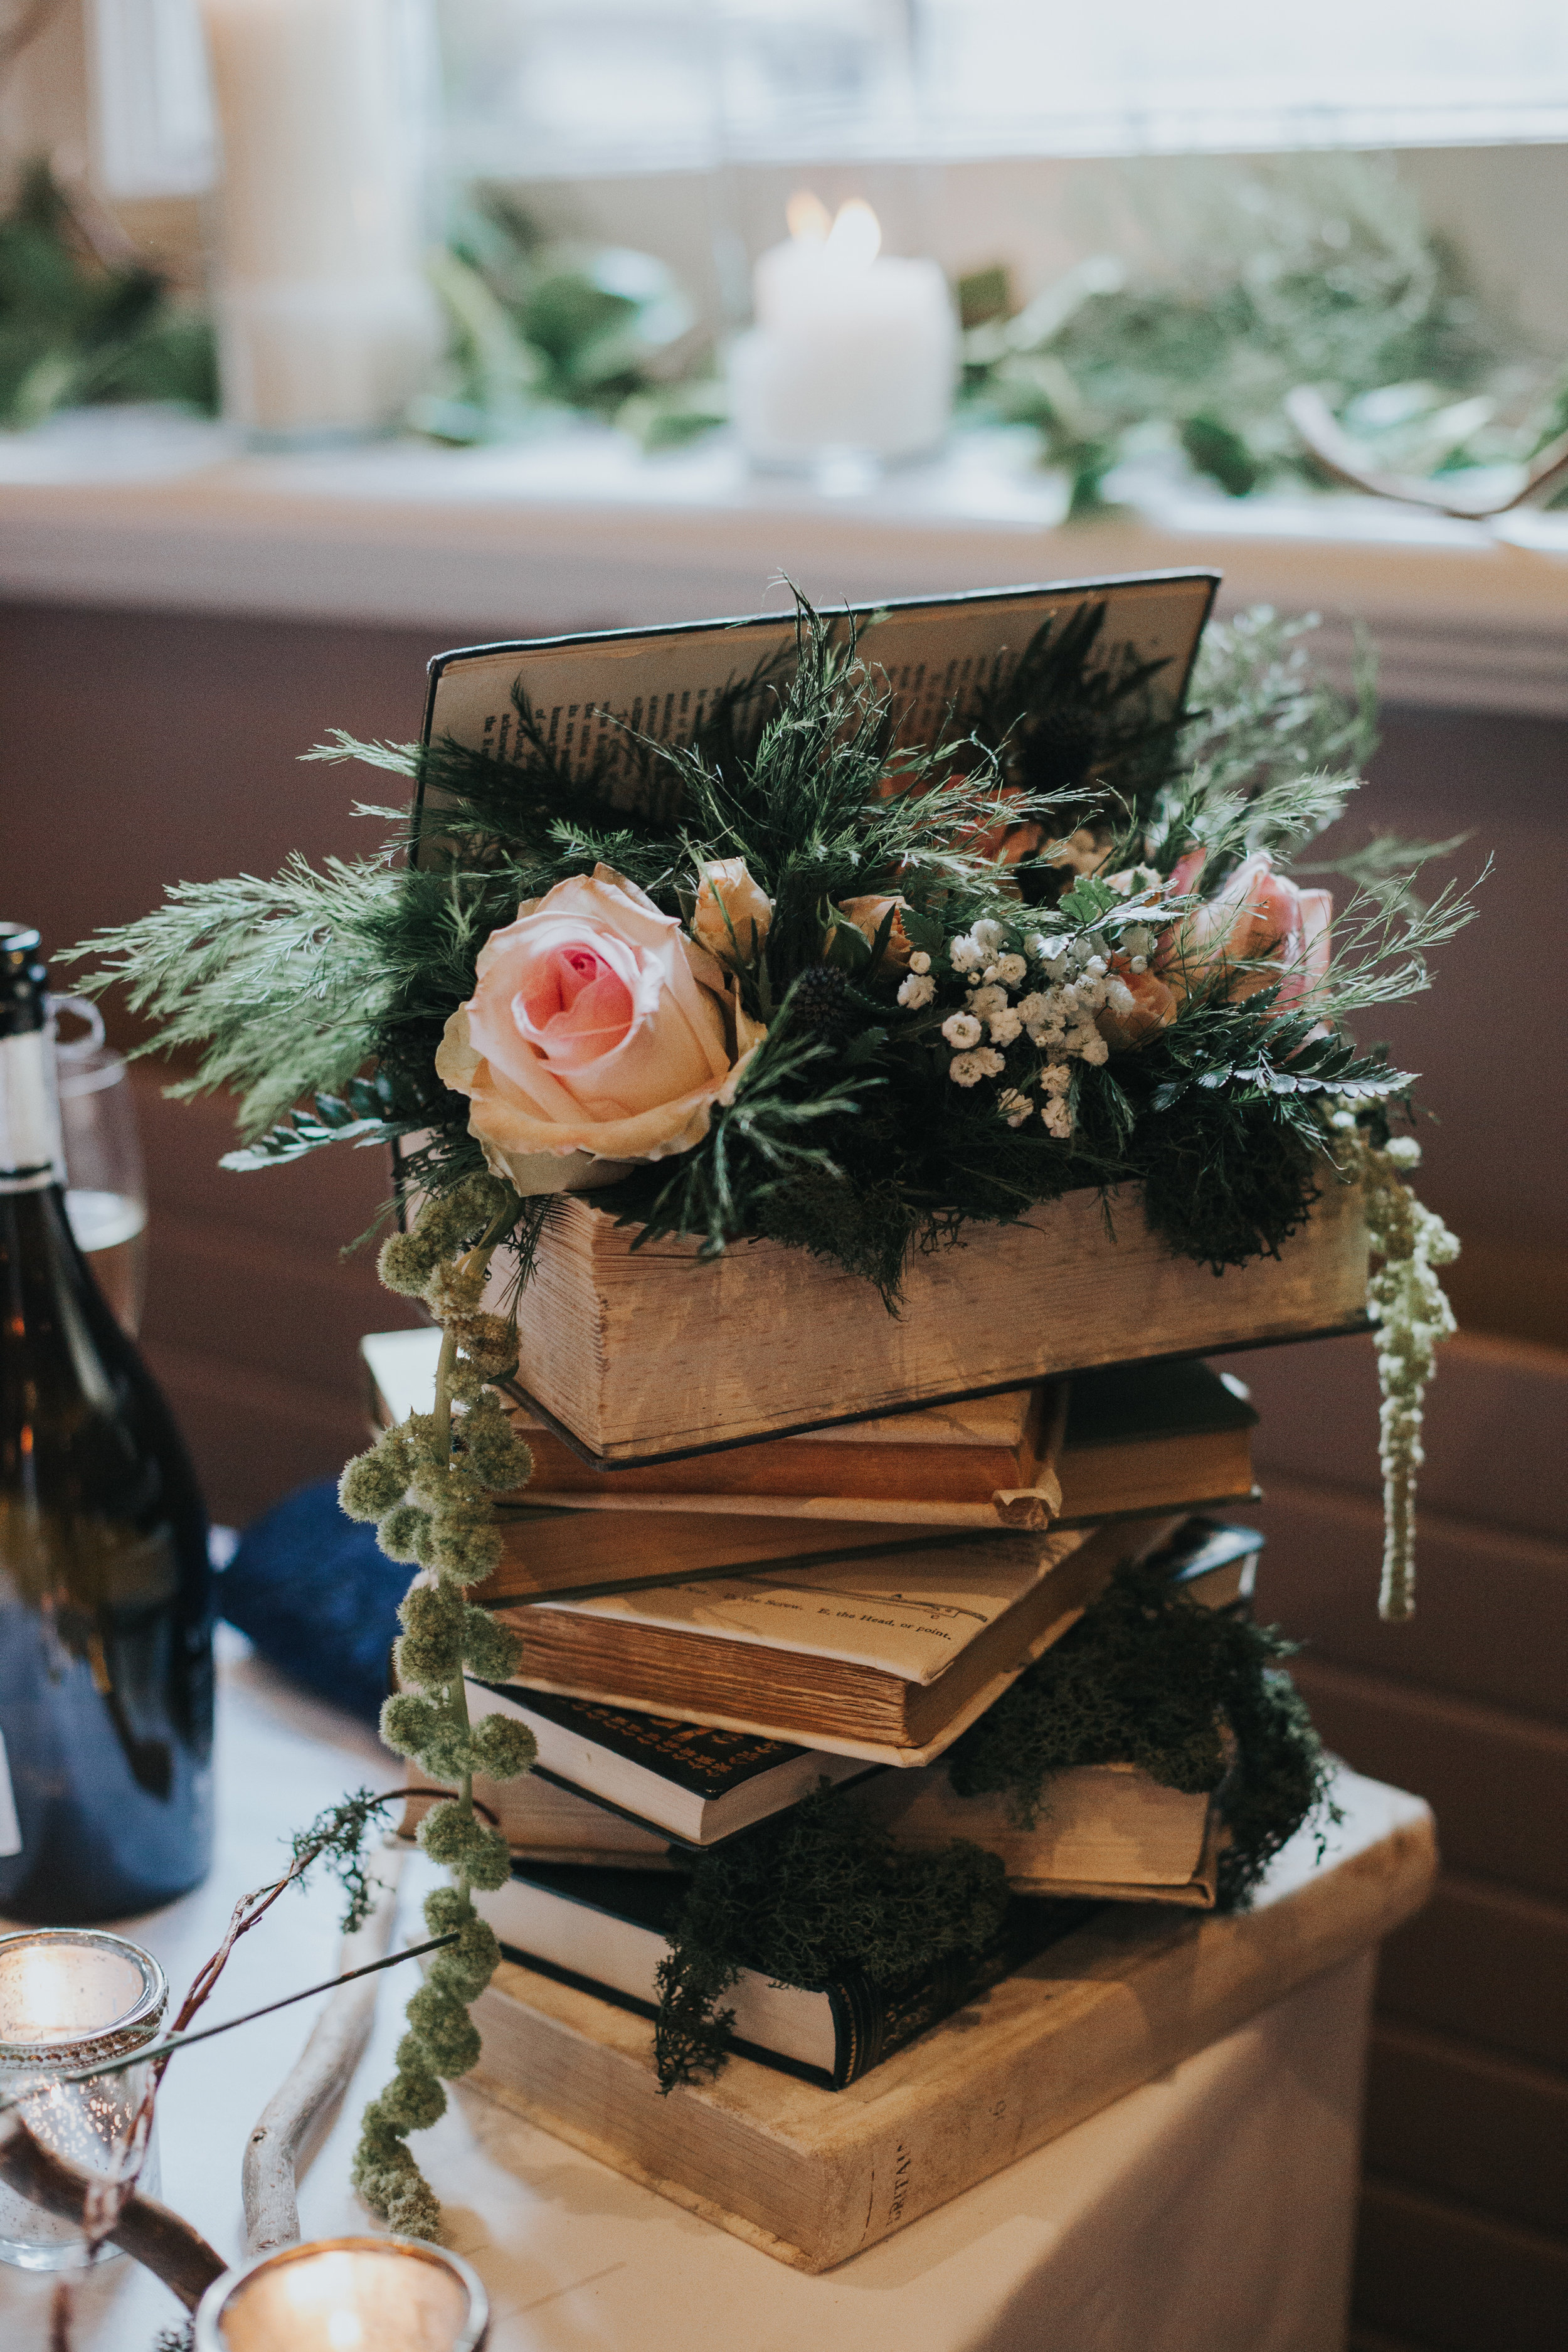 Books stacked with roses.